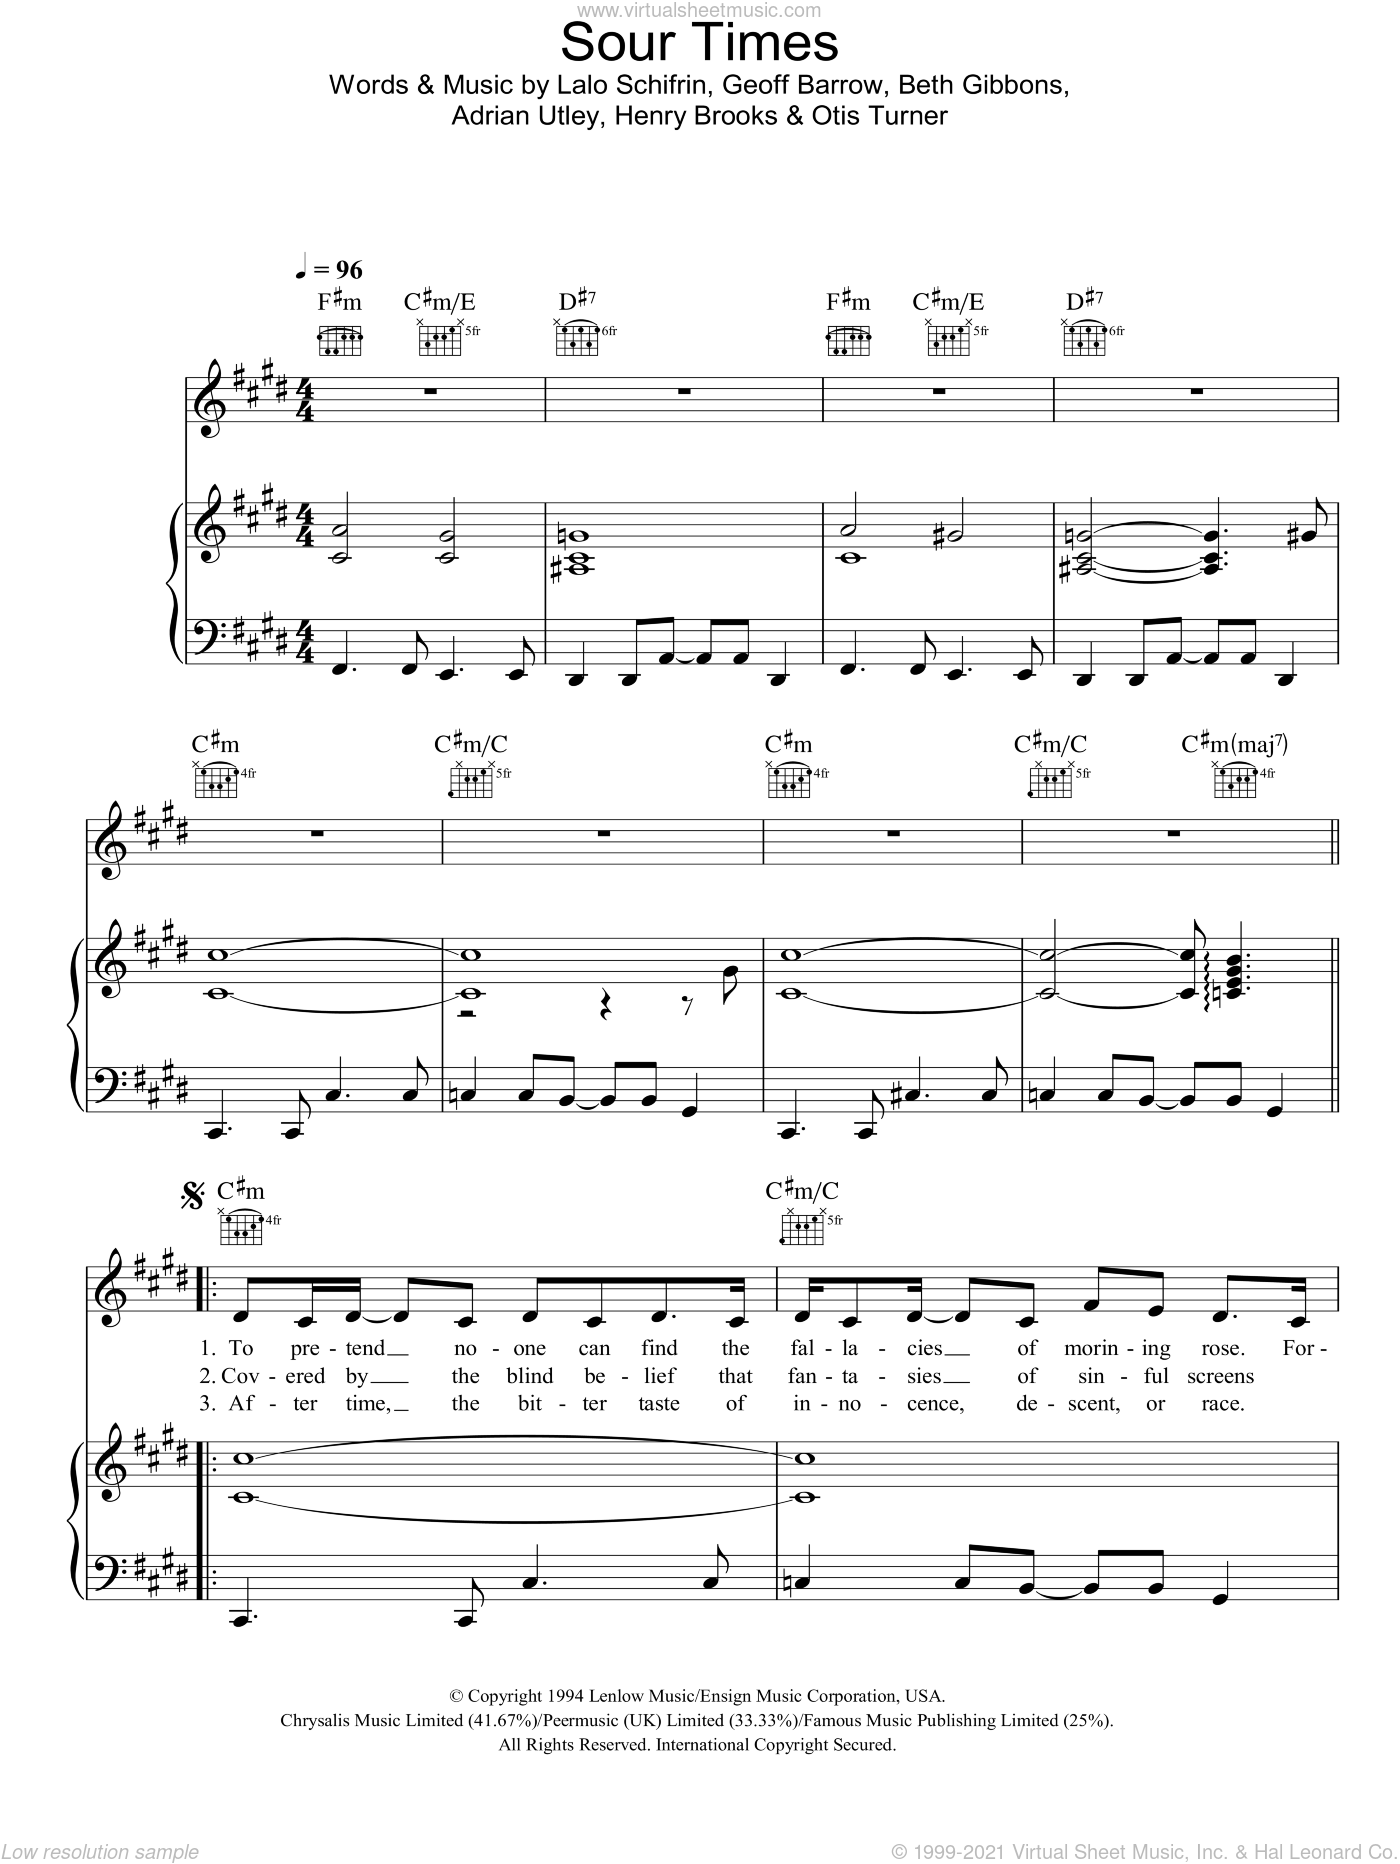 Sour Times sheet music for voice, piano or guitar by Adrian Utley